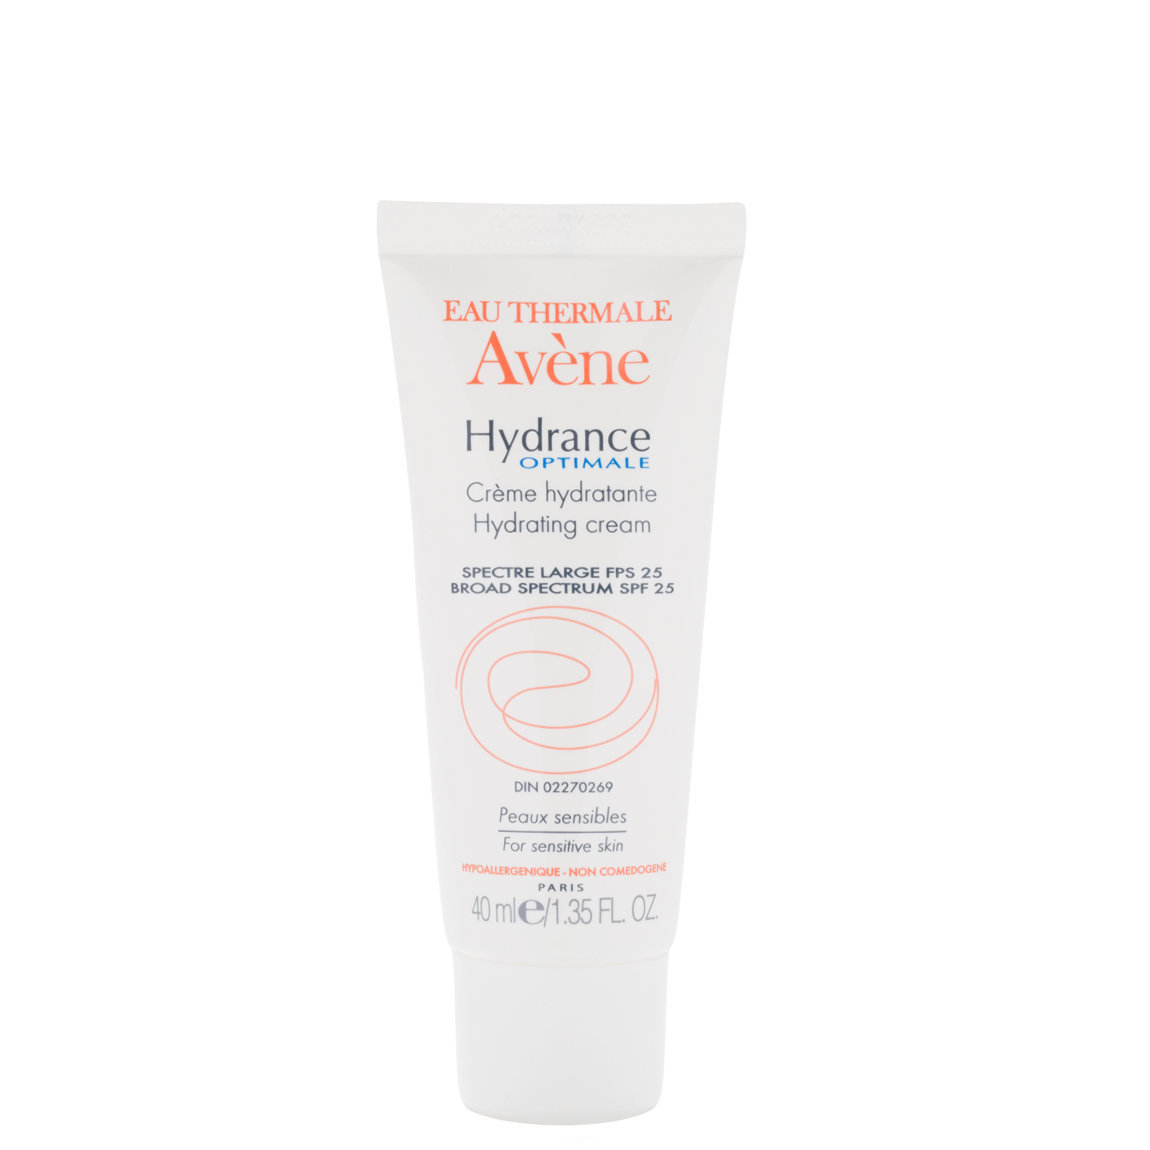 Eau Thermale Avène Hydrance Optimale SPF 25 Hydrating Cream product swatch.